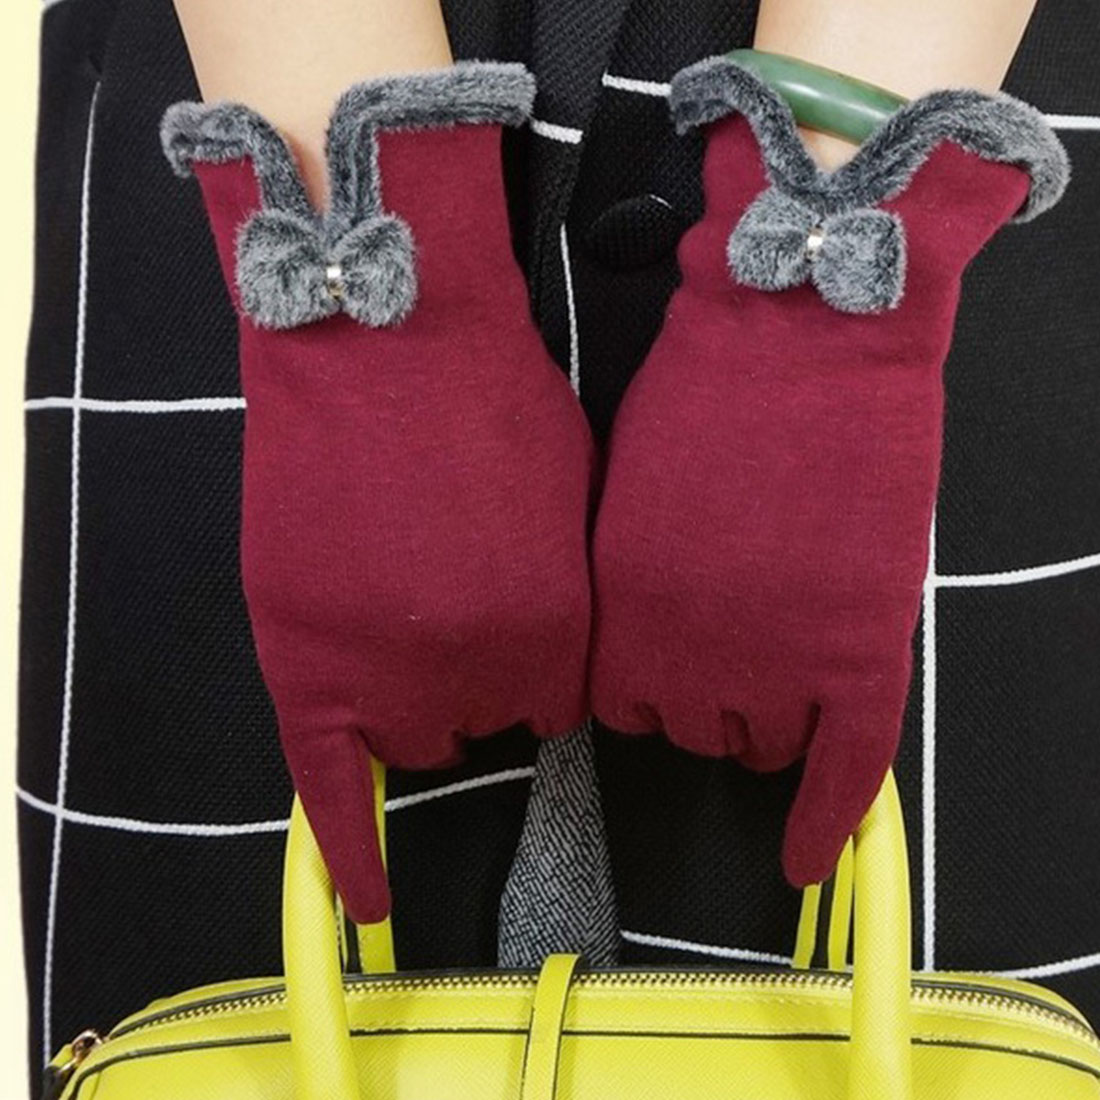 Heated motorcycle gloves new zealand - 1 Pair Elegant Design For Fitness Women 2016 Phone Touch Screen Outdoor Wrist Mittens Heated Gloves